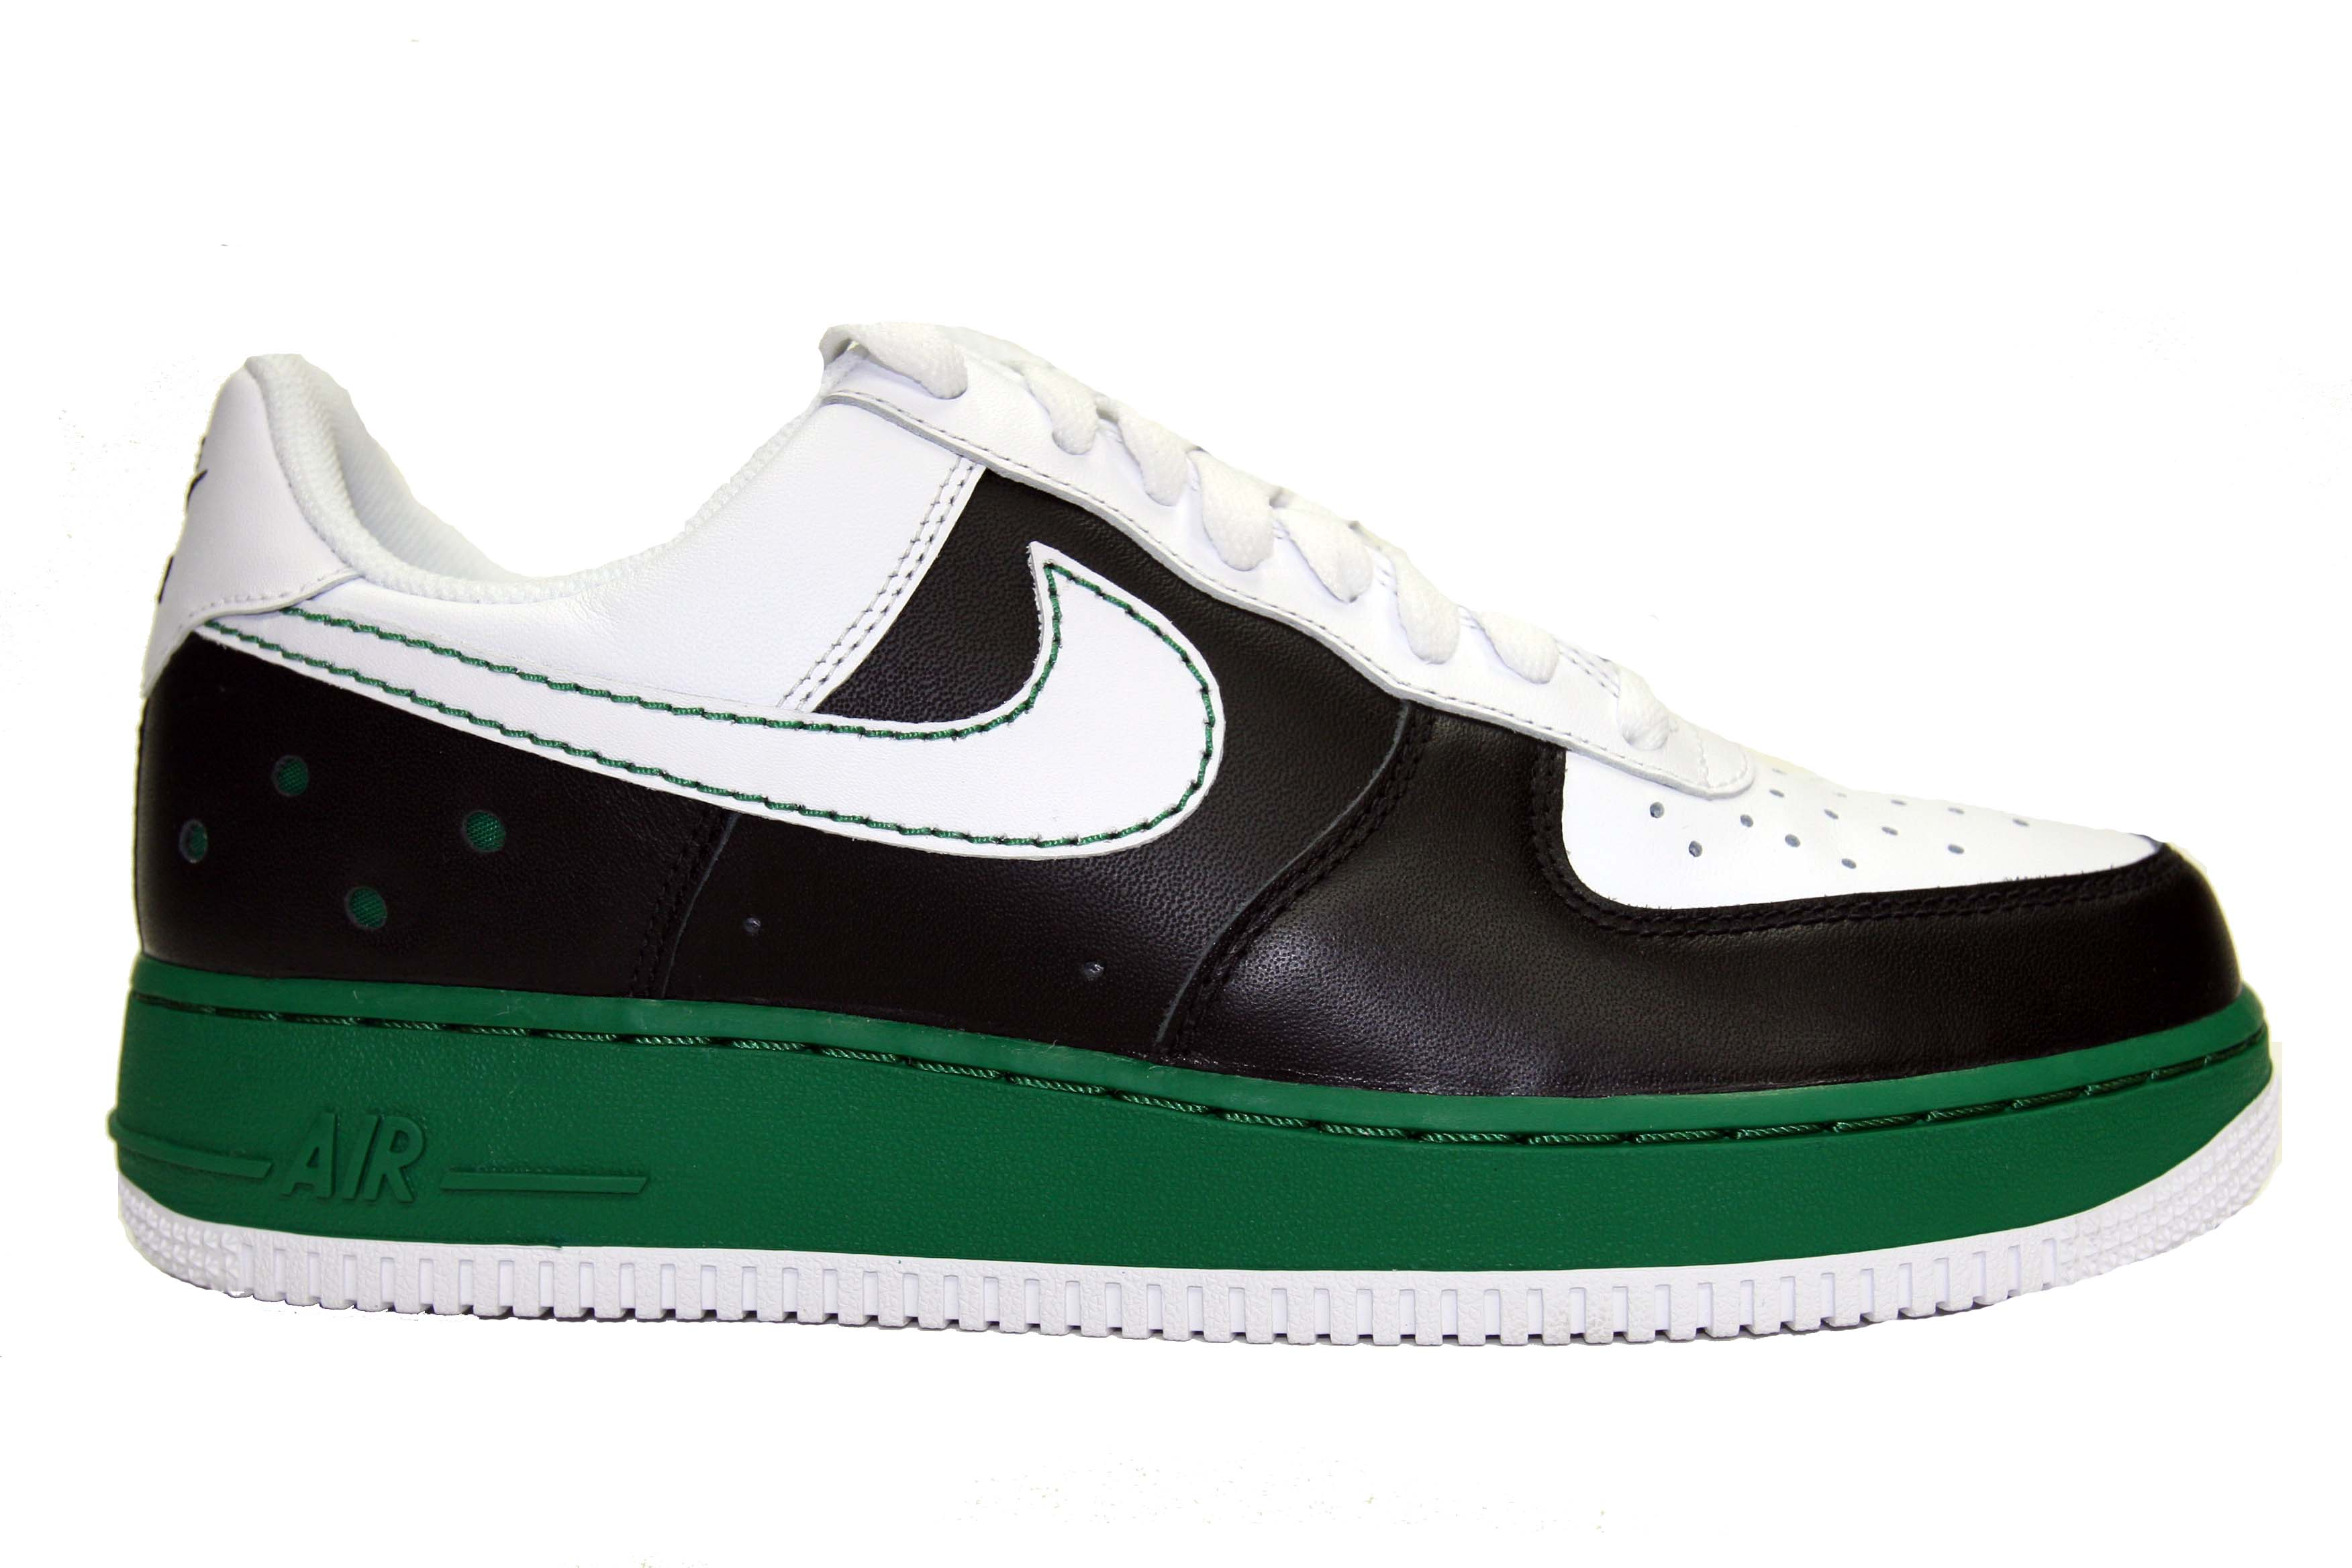 On Sale: Nike Air Force 1 Low at BNYC Online (Most Popular in NYC)